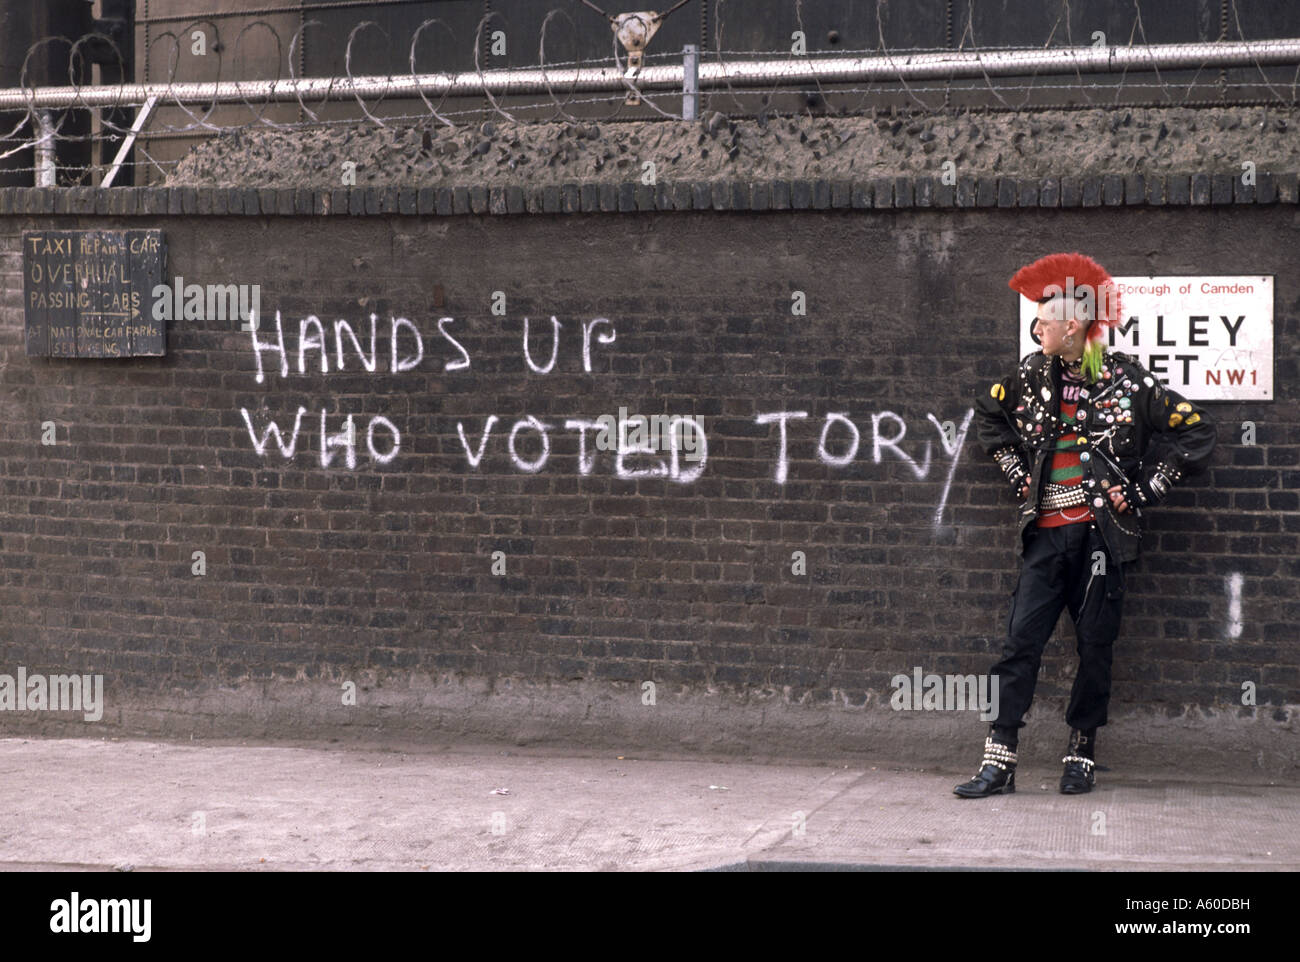 Punk standing in front of wall with graffiti saying hands up who voted Tory - Stock Image